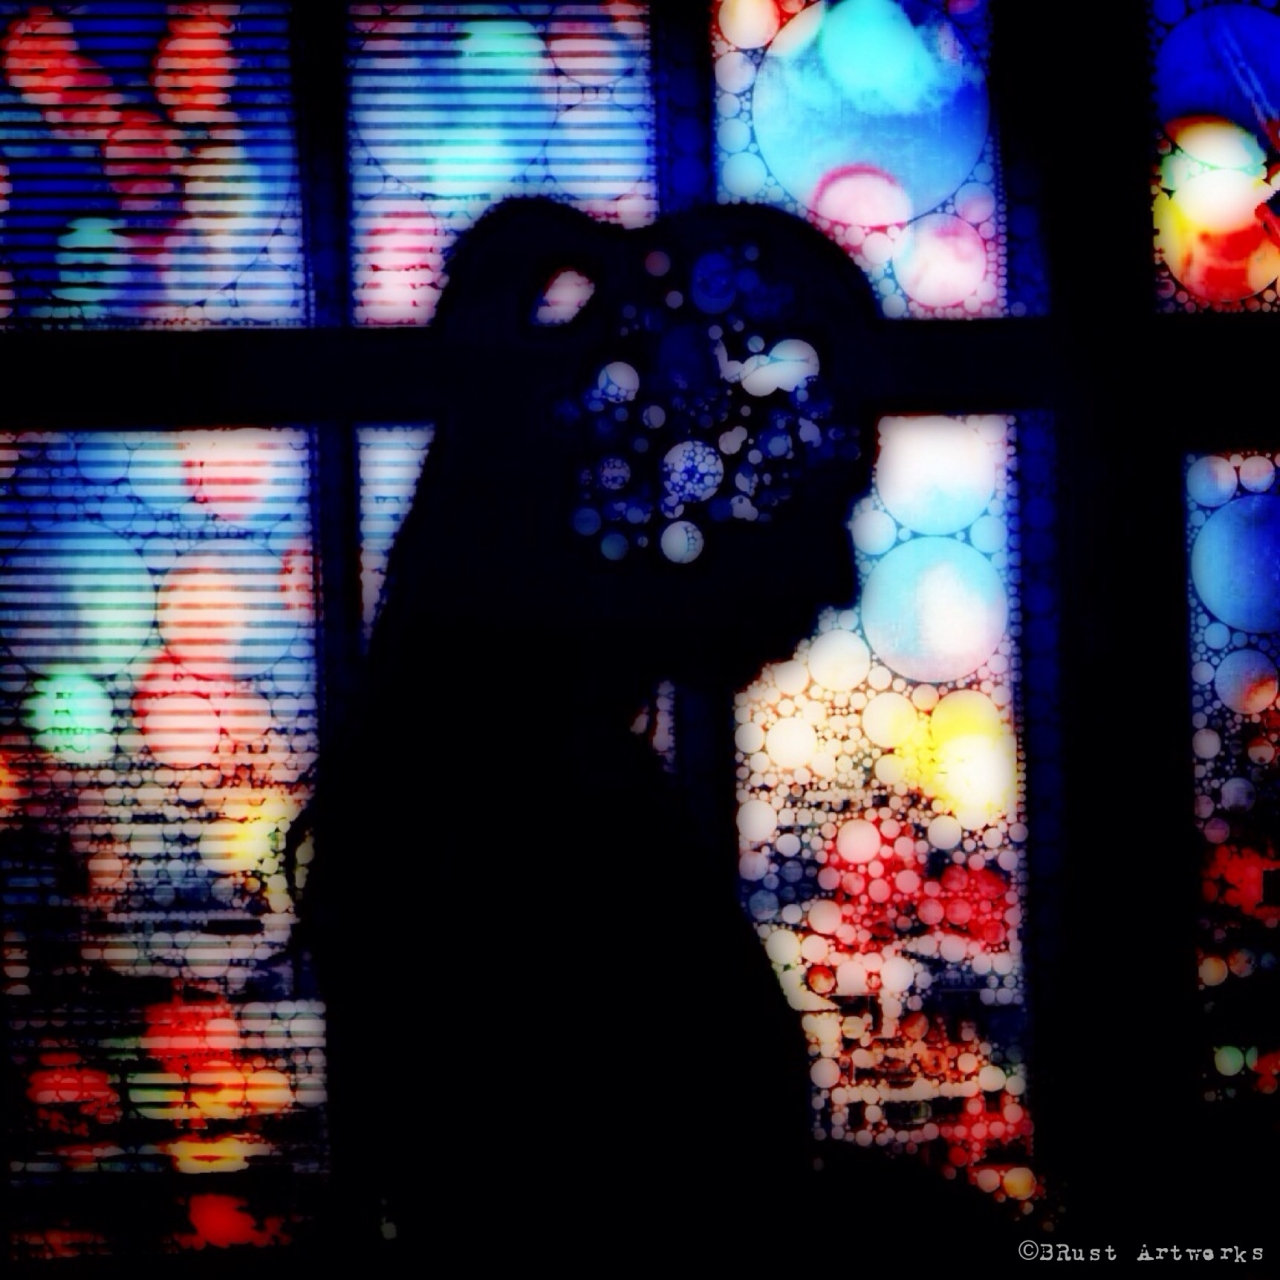 This piece was edited with: Diana Photo, Percolator, Decim8, Aviary, Dynamic Light, Fragment,...